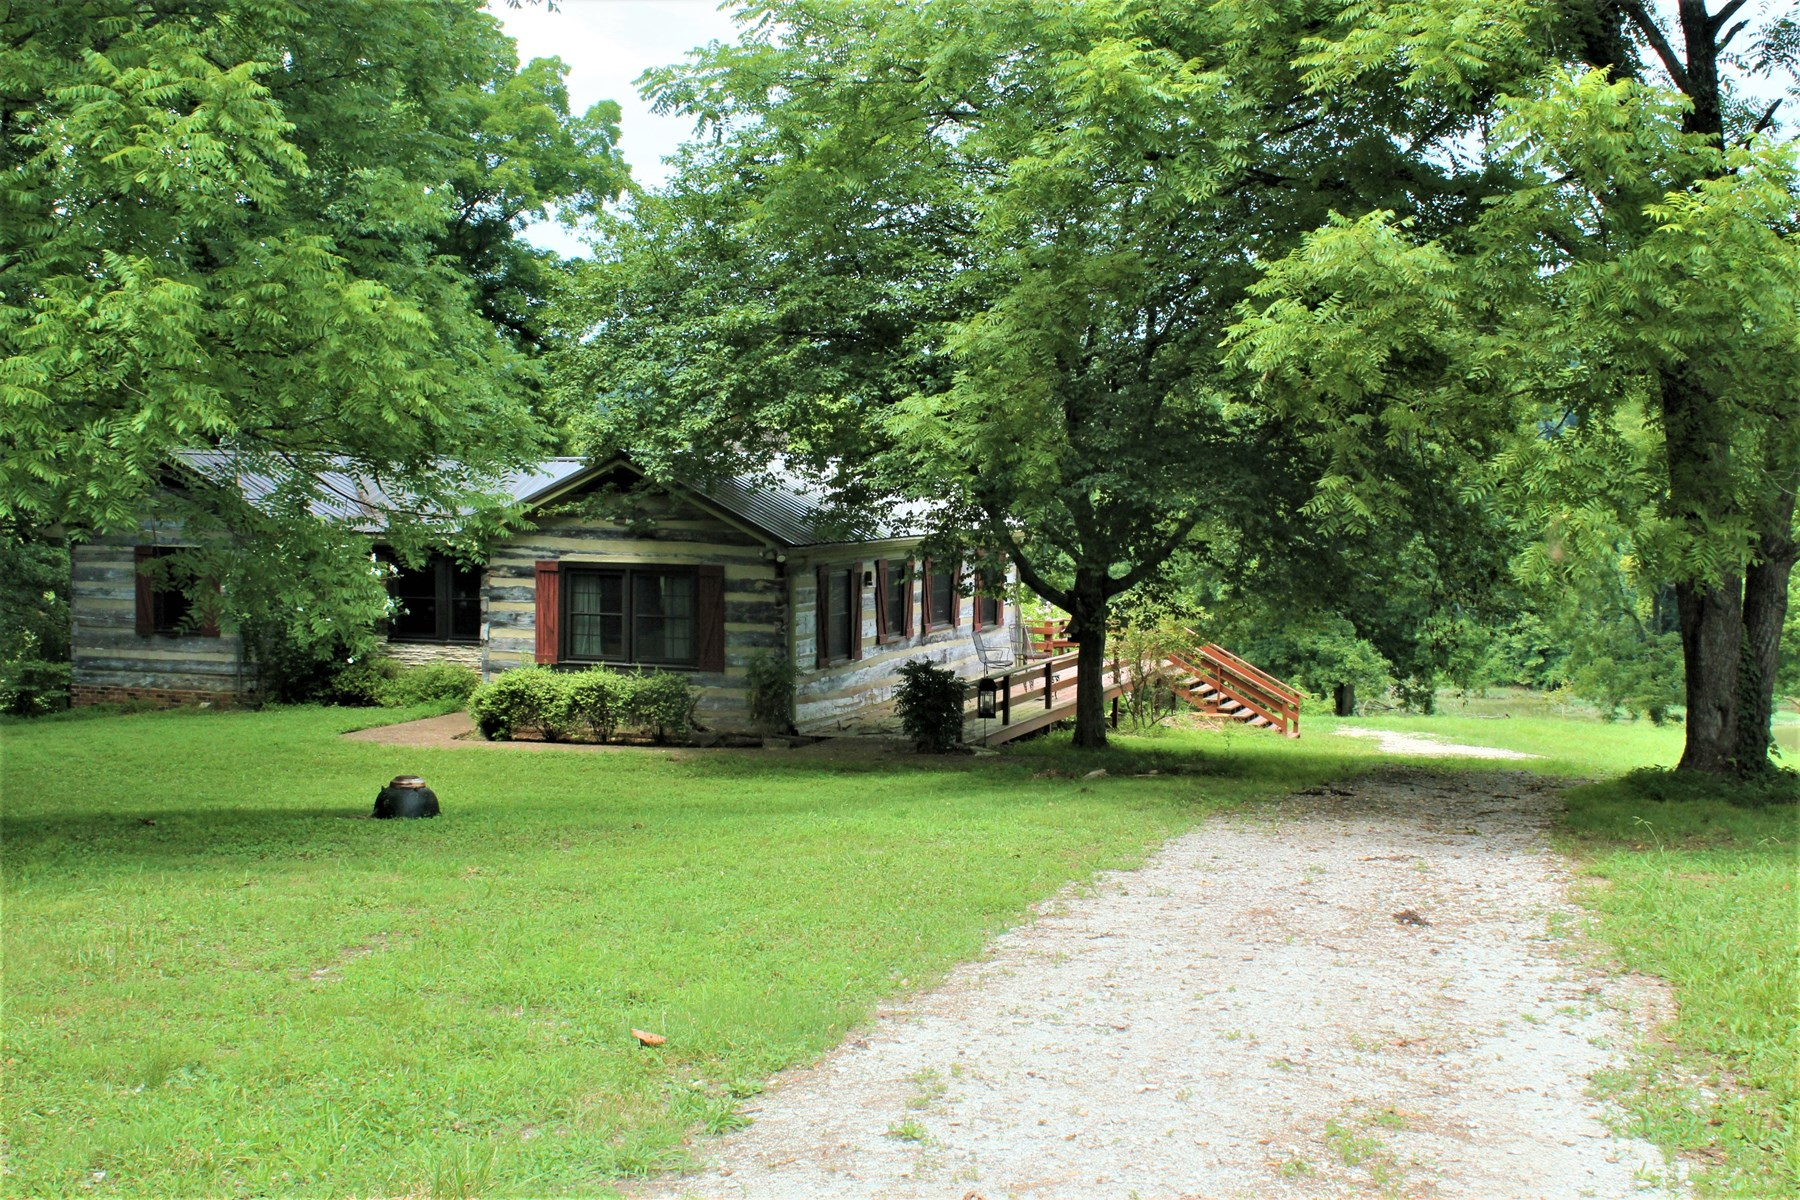 Log home Duck river frontage stock pond acreage for sale TN